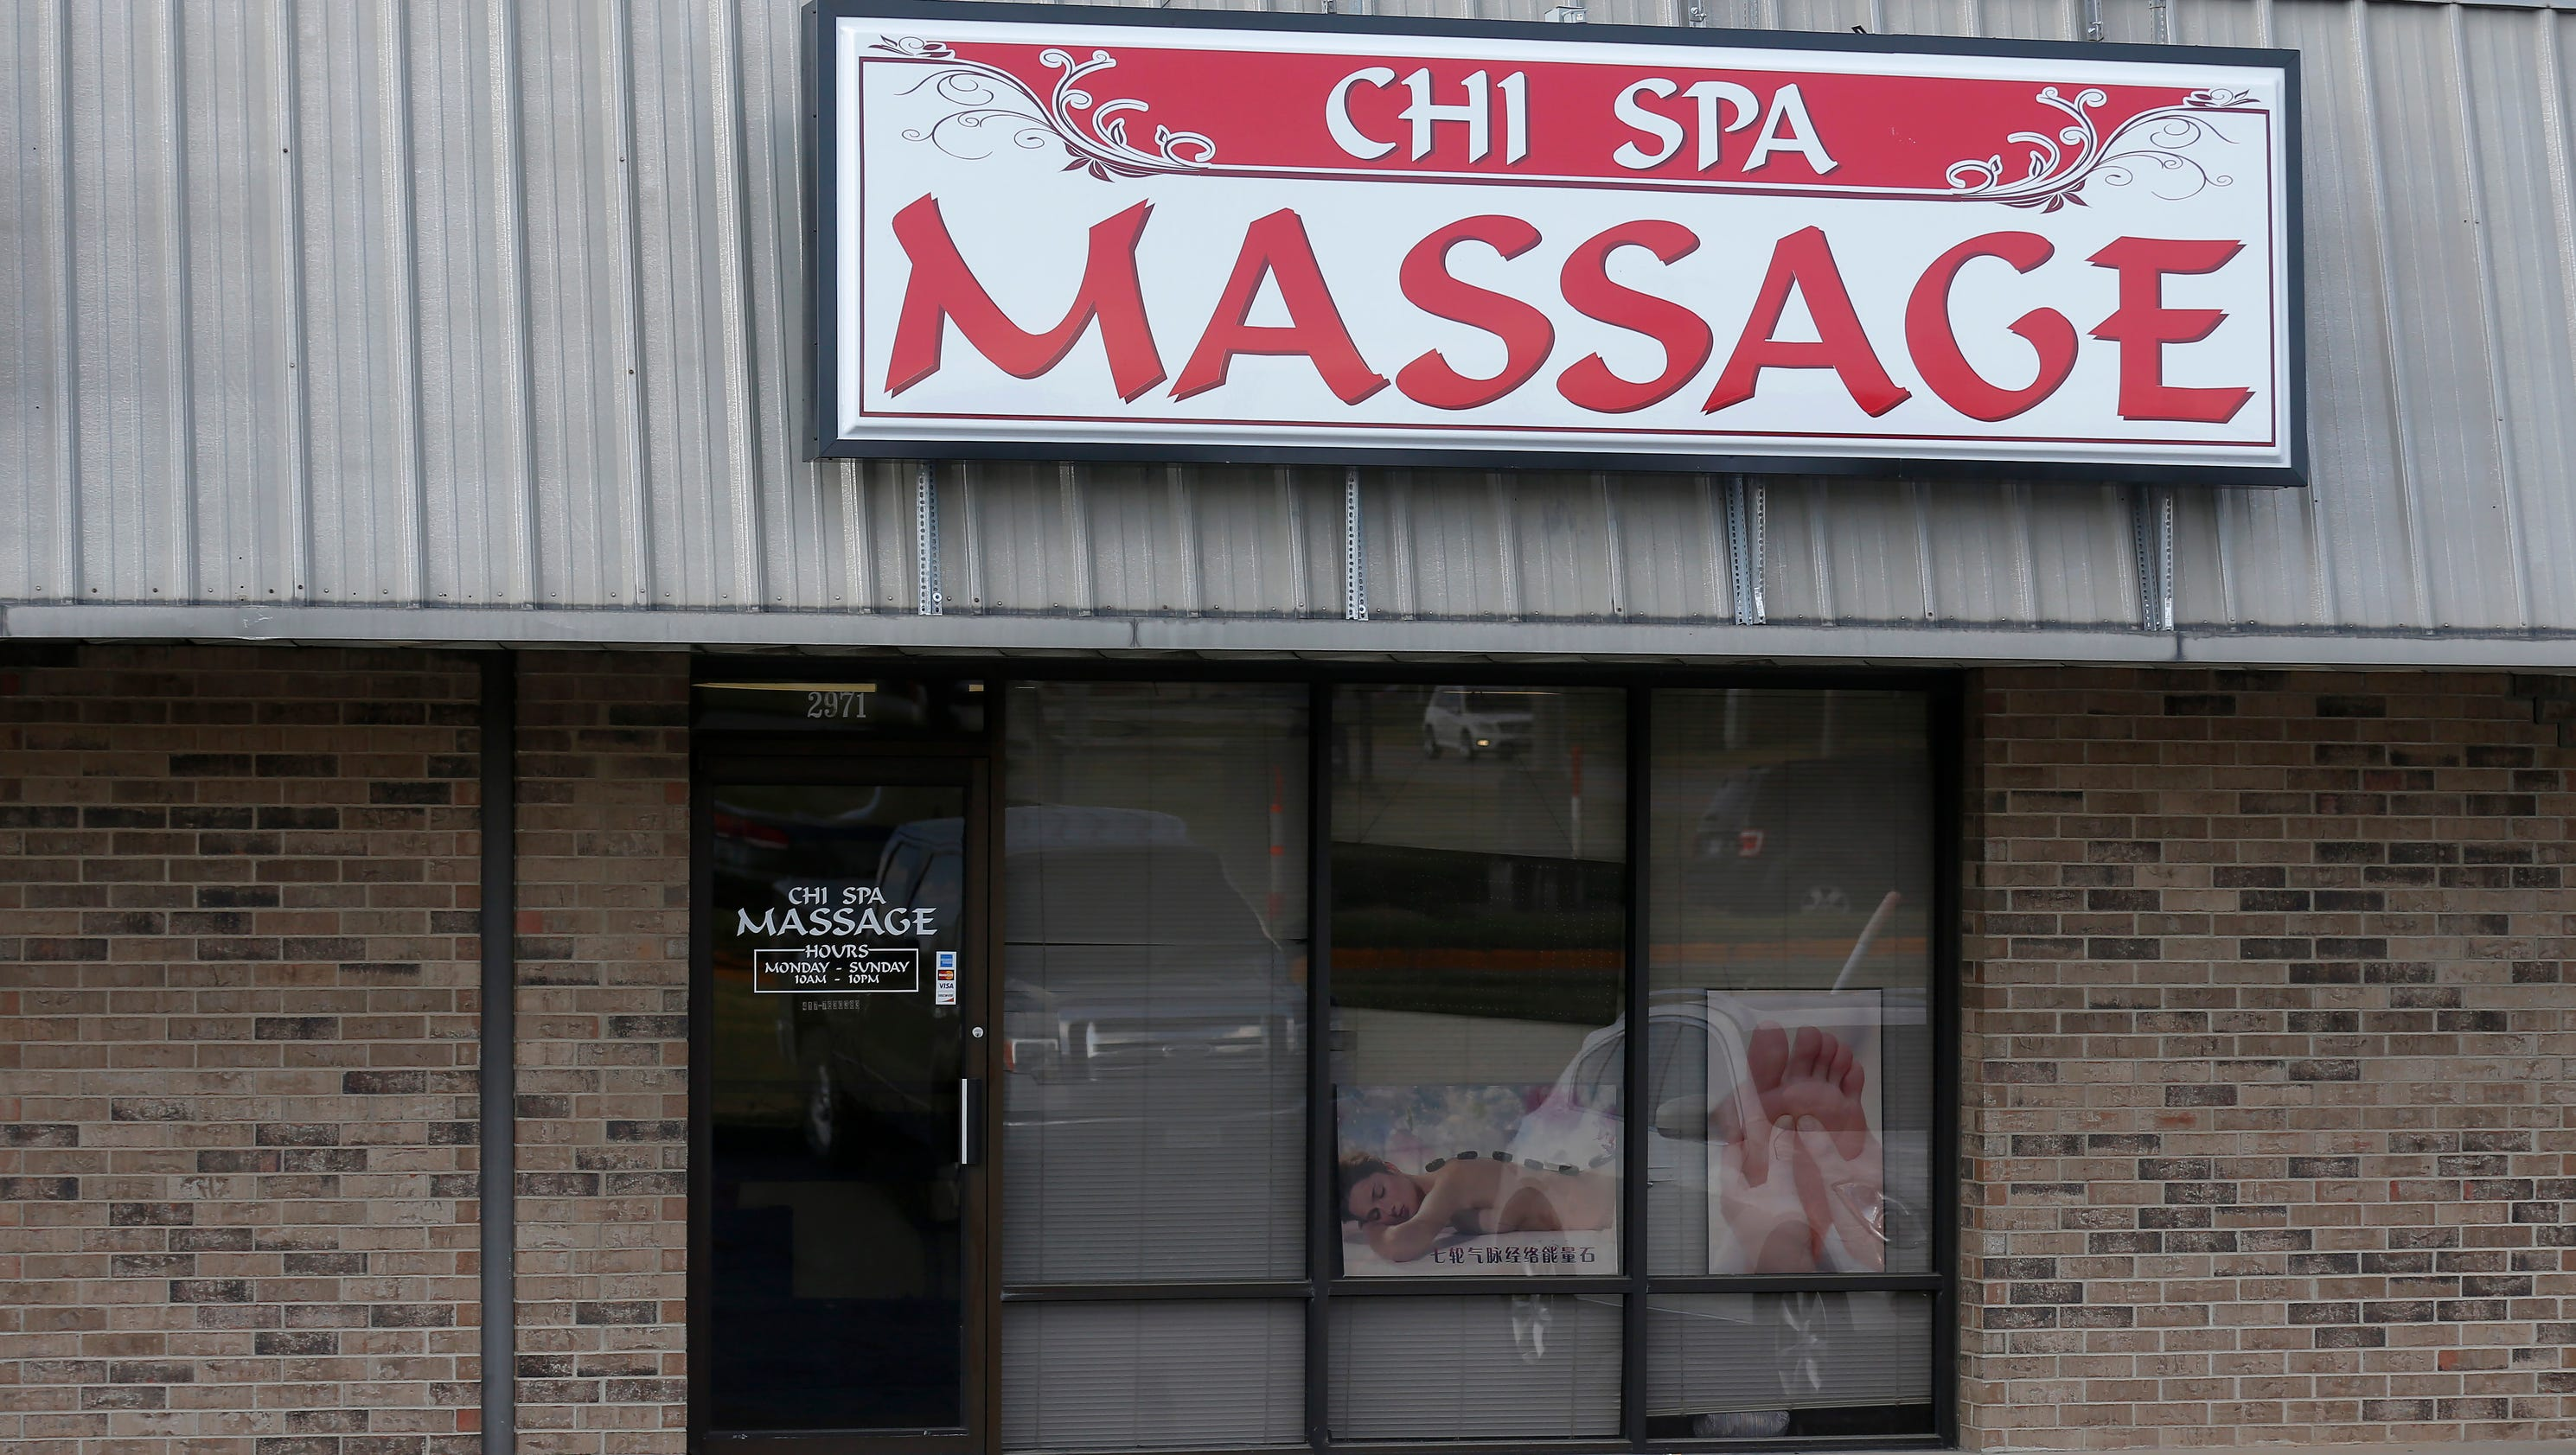 Charged and at large: 9 operators of Asian massage parlors wanted by  police, official says